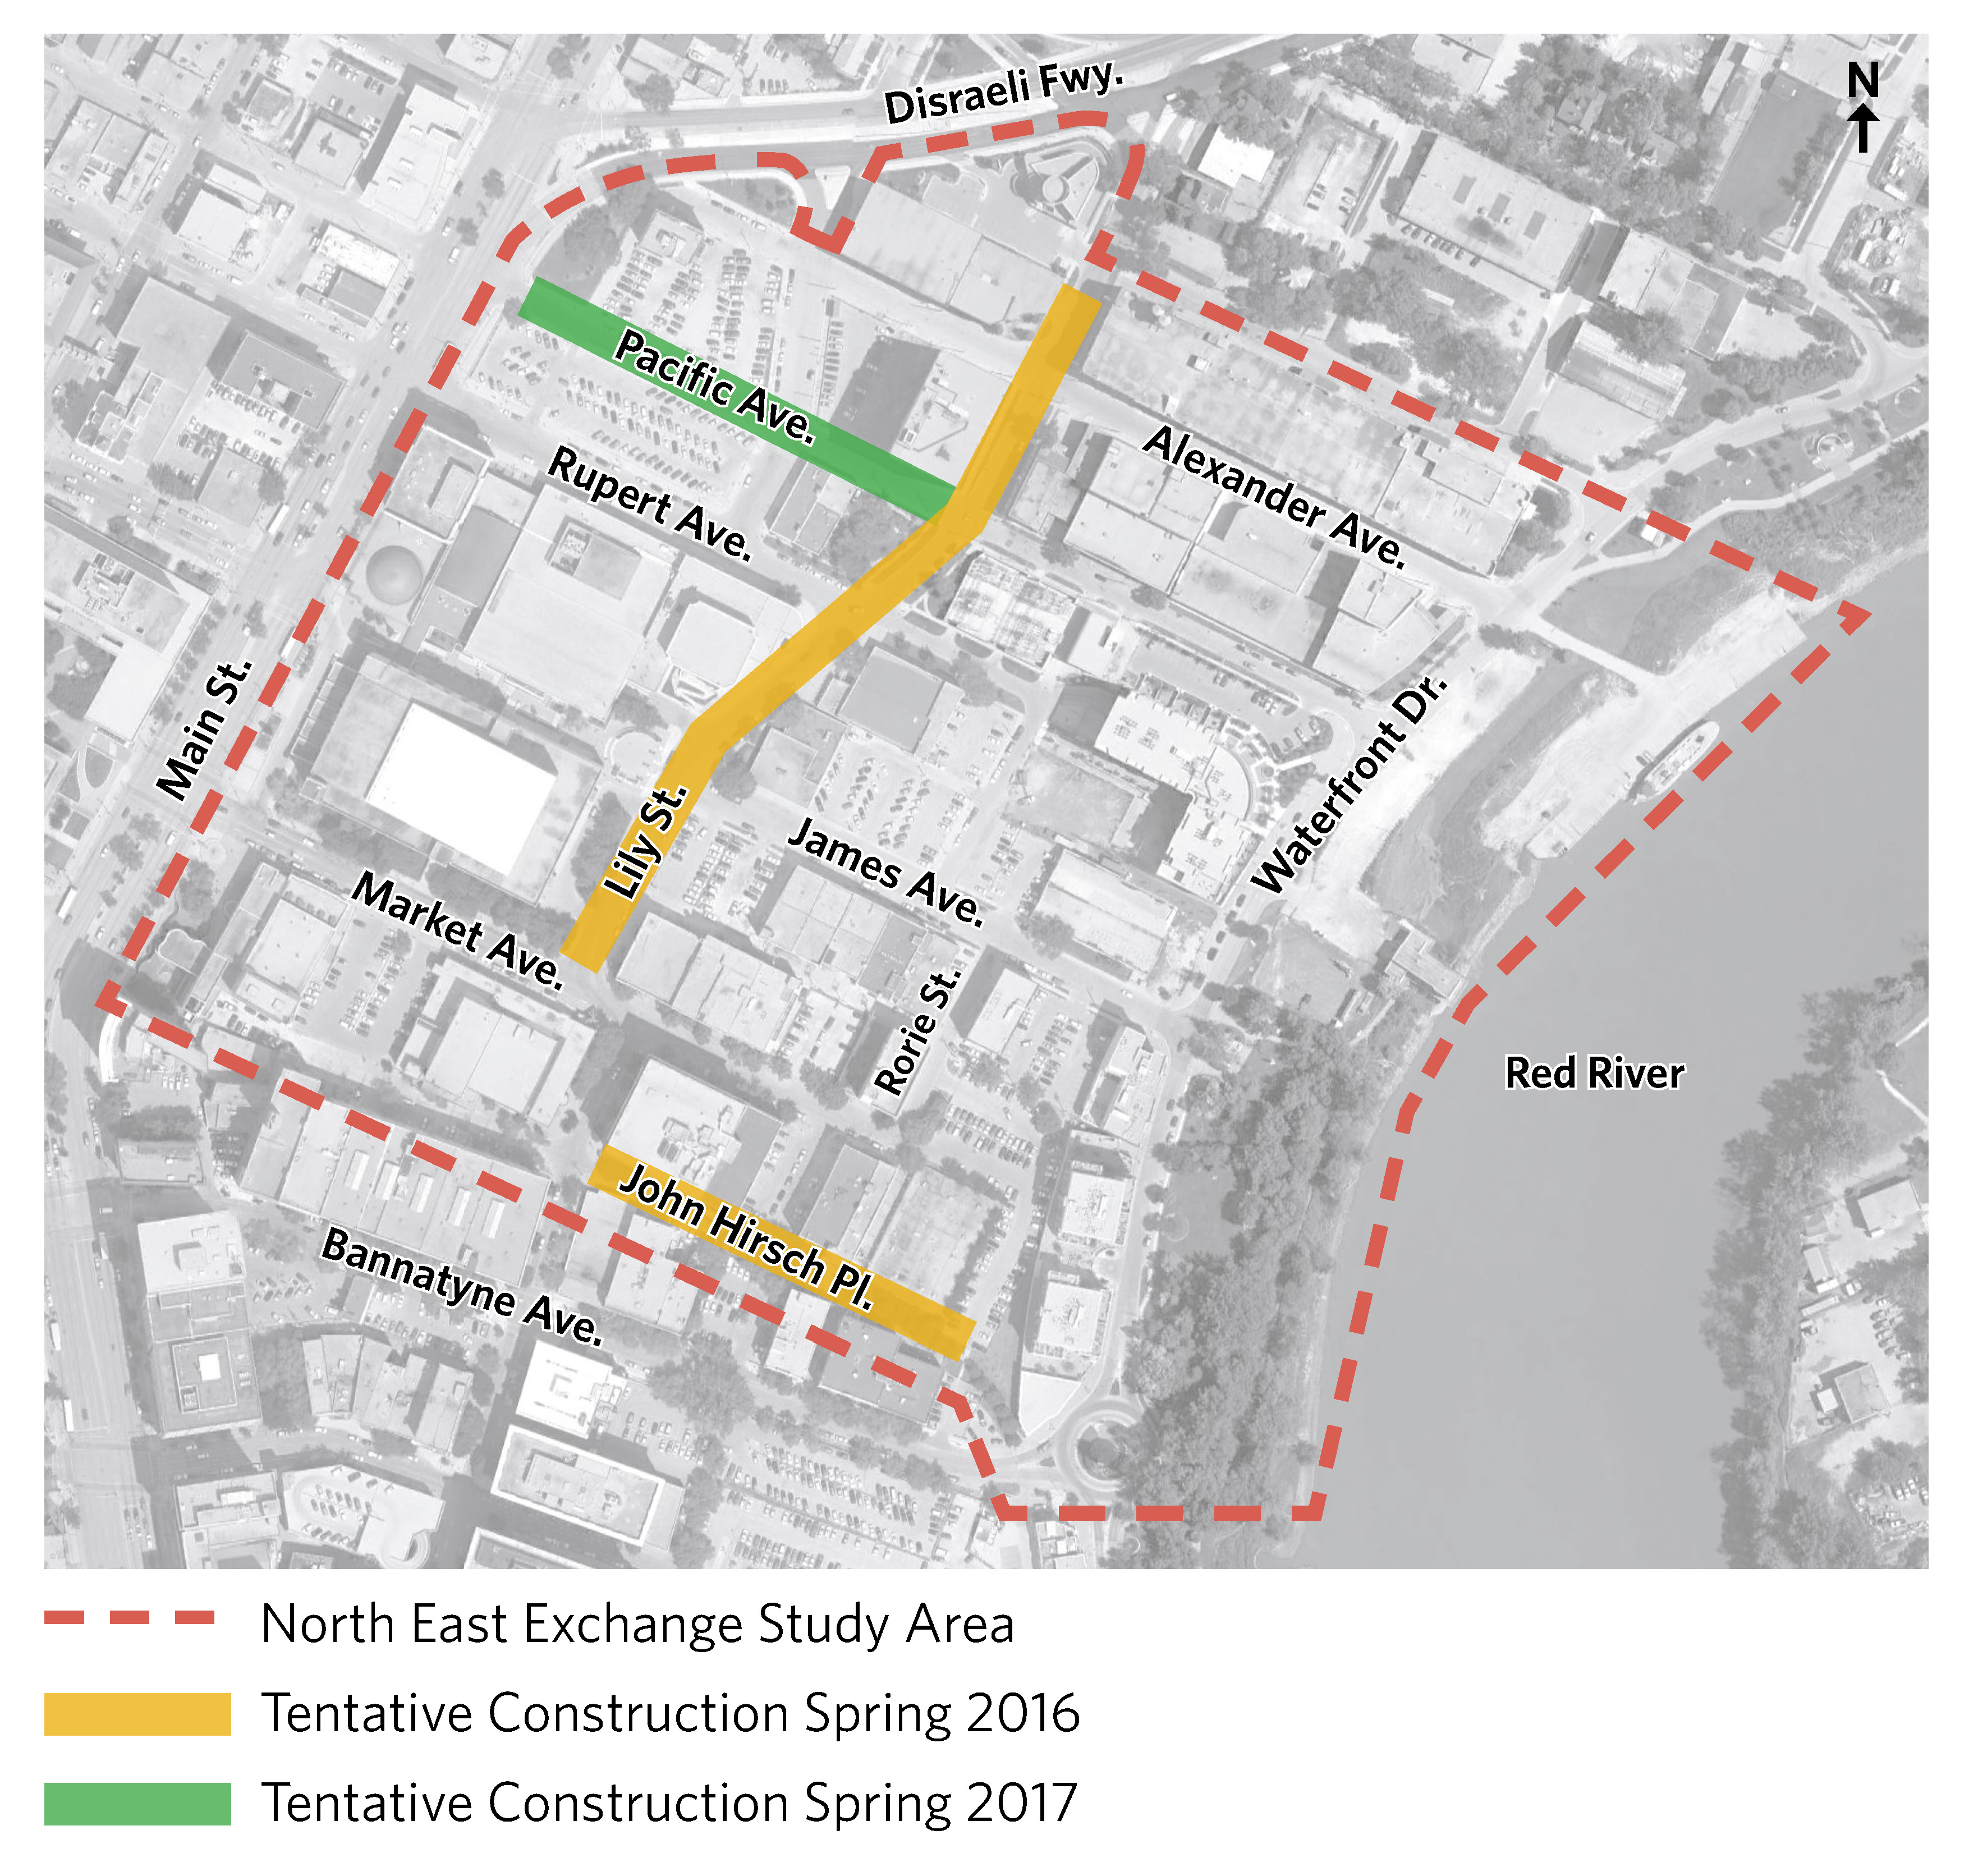 Construction Site Map: North East Exchange District Study